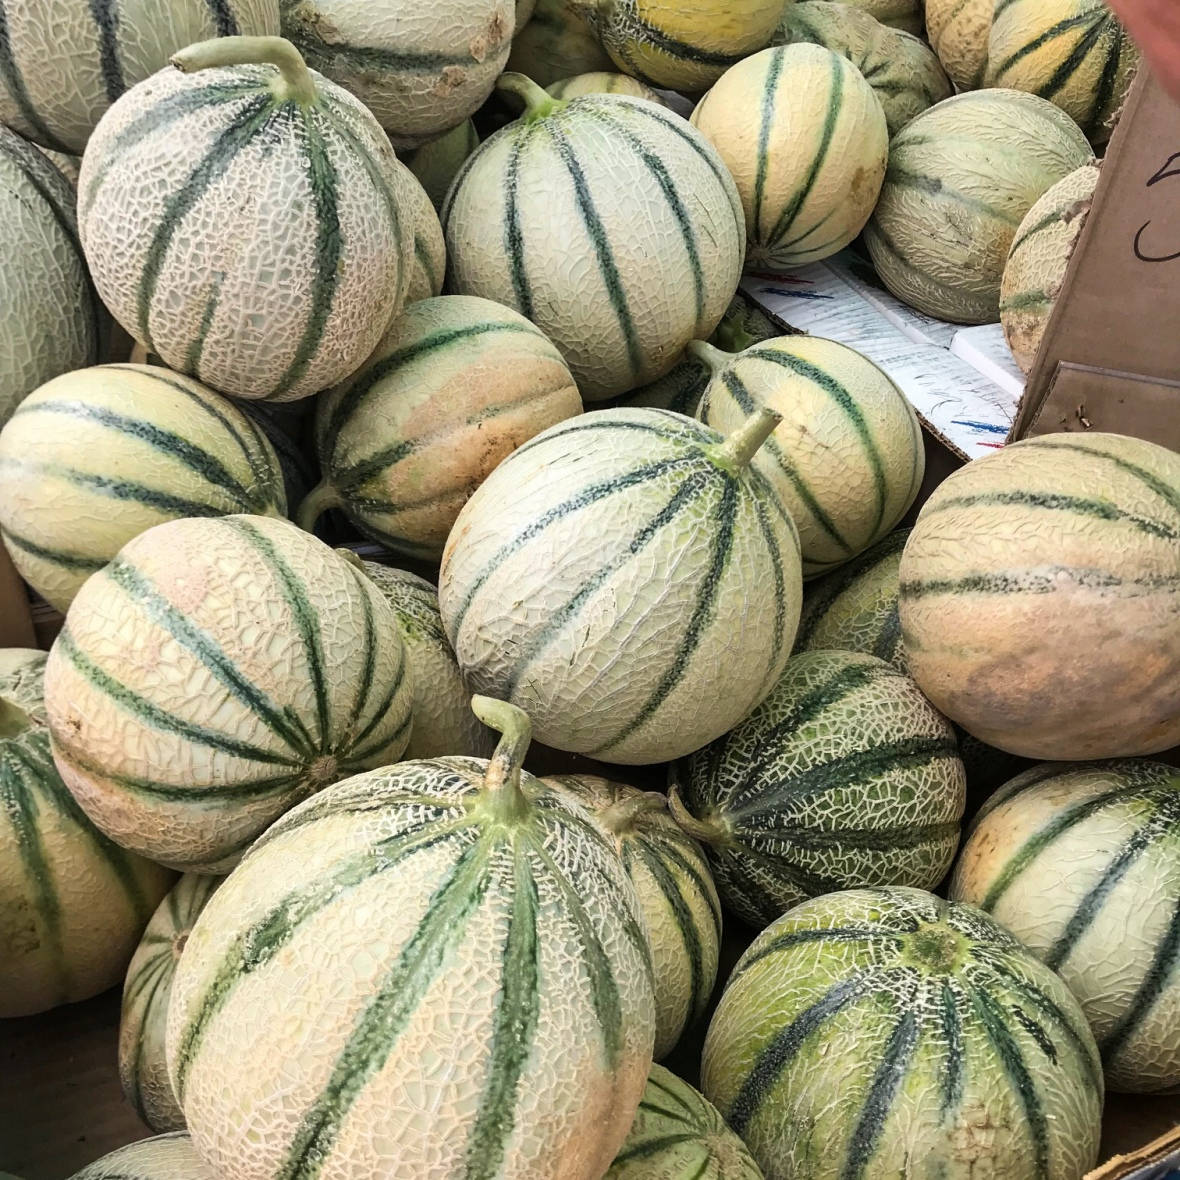 Provence, melons